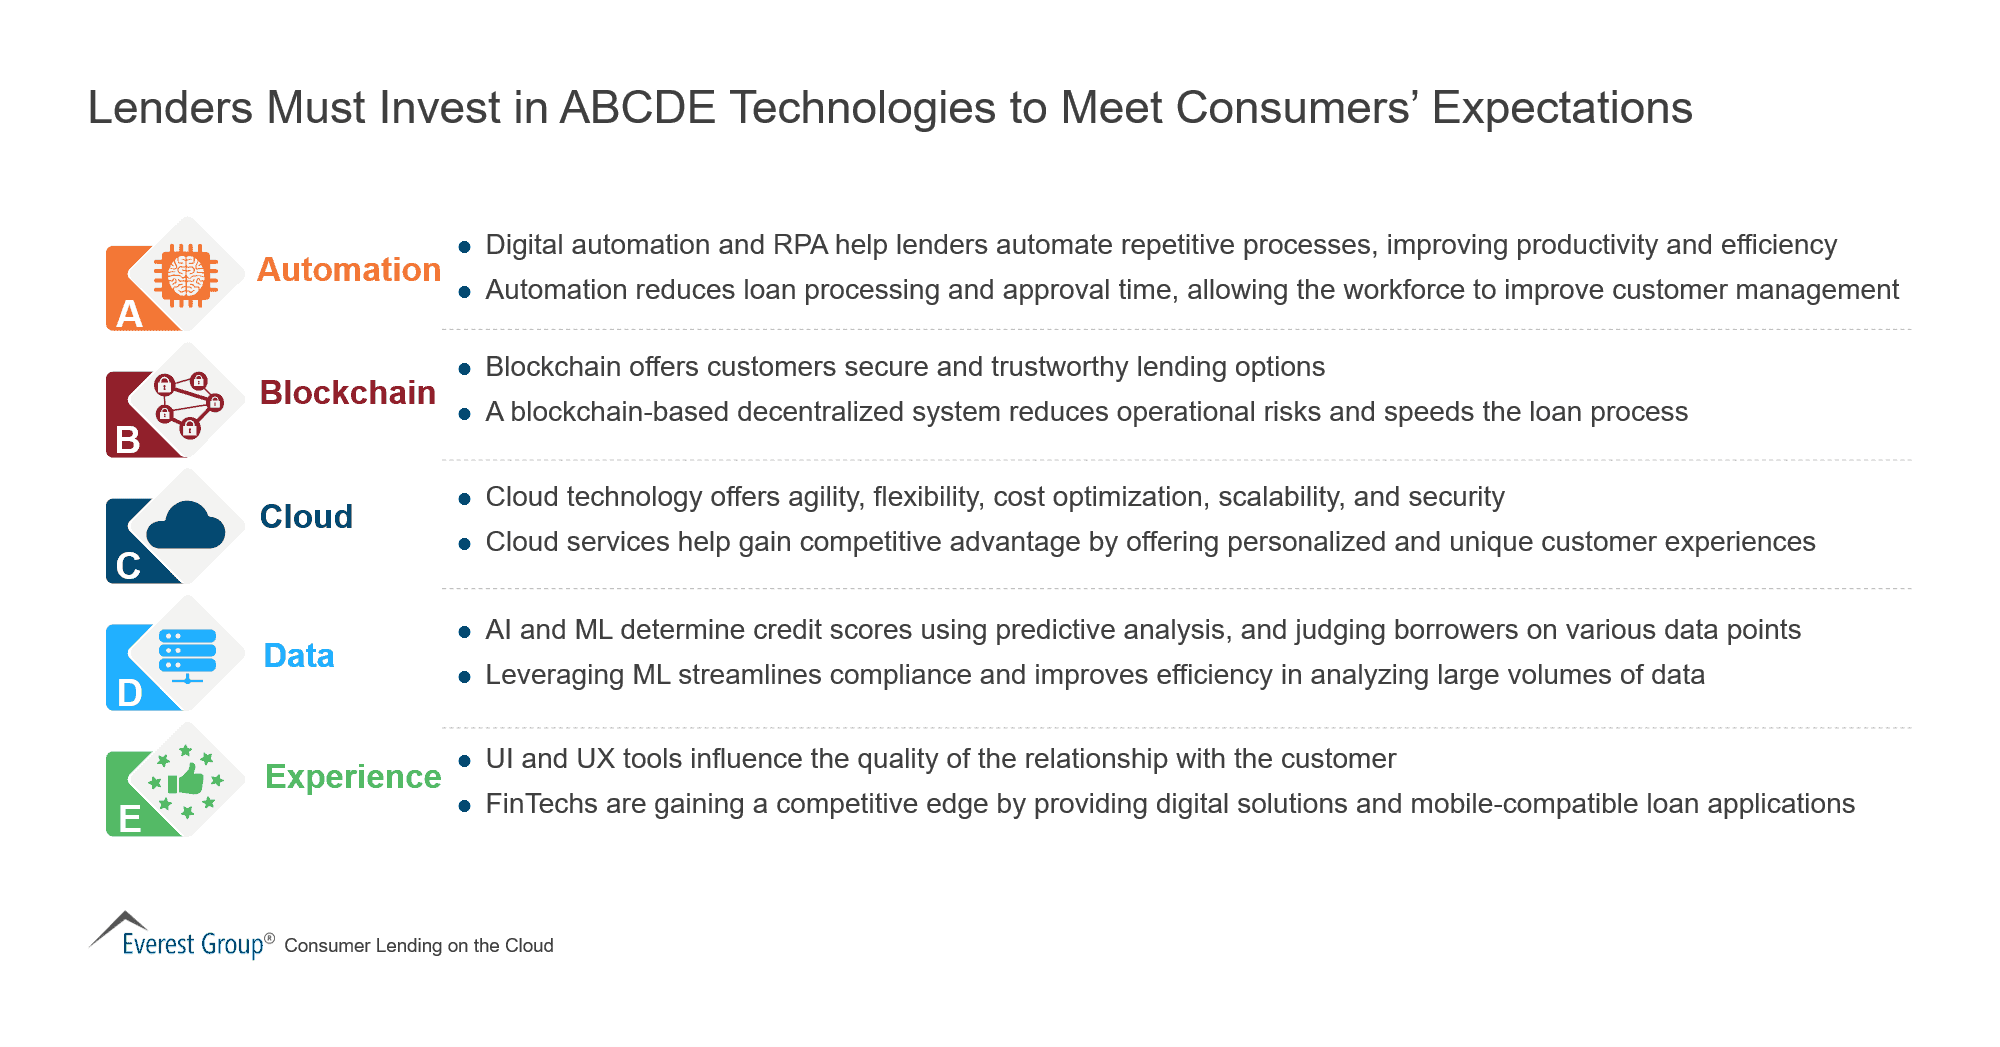 Lenders Must Invest in ABCDE Technologies to Meet Consumers' Expectations